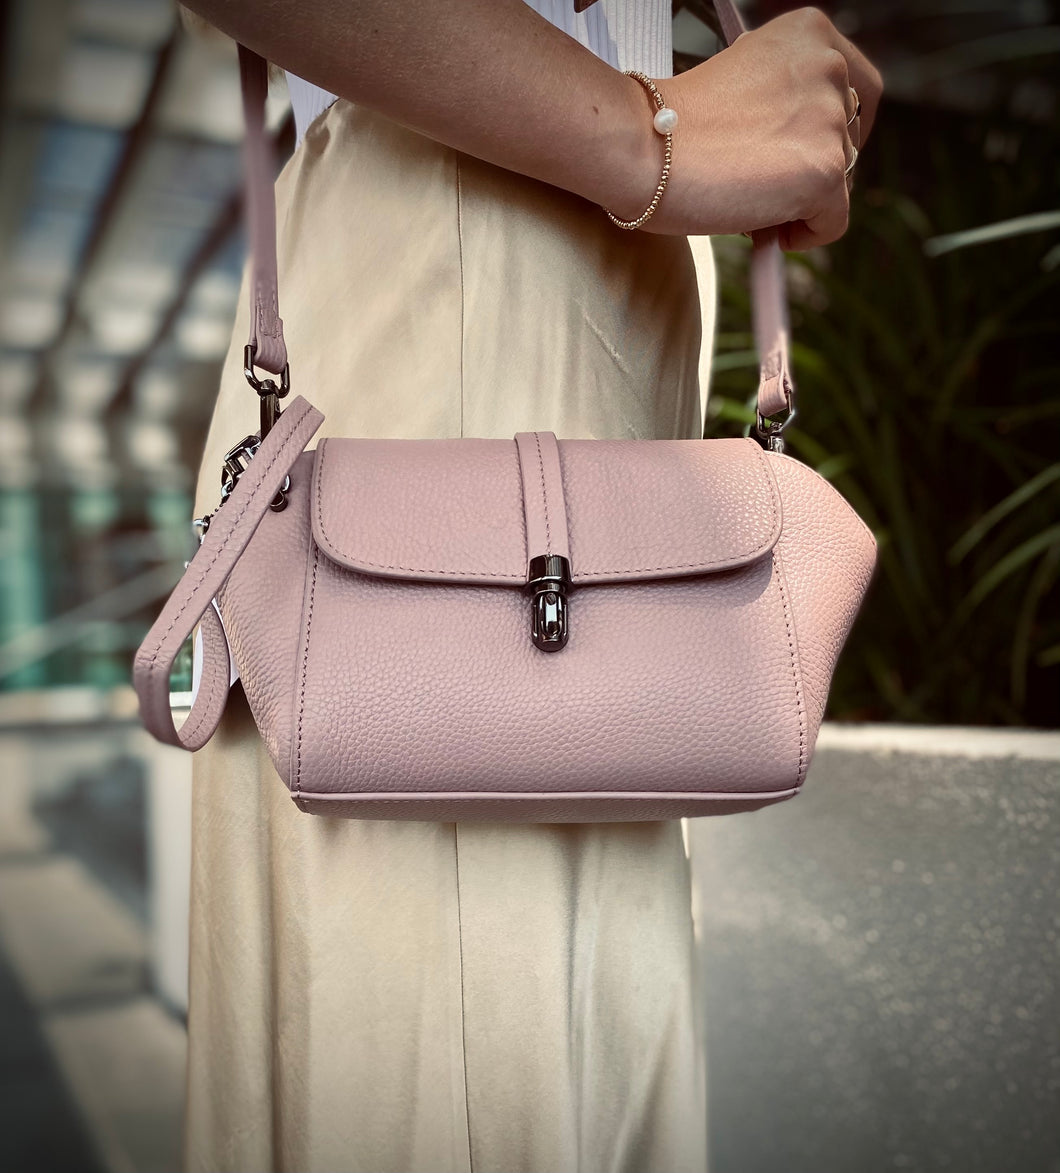 The Juliet handbag